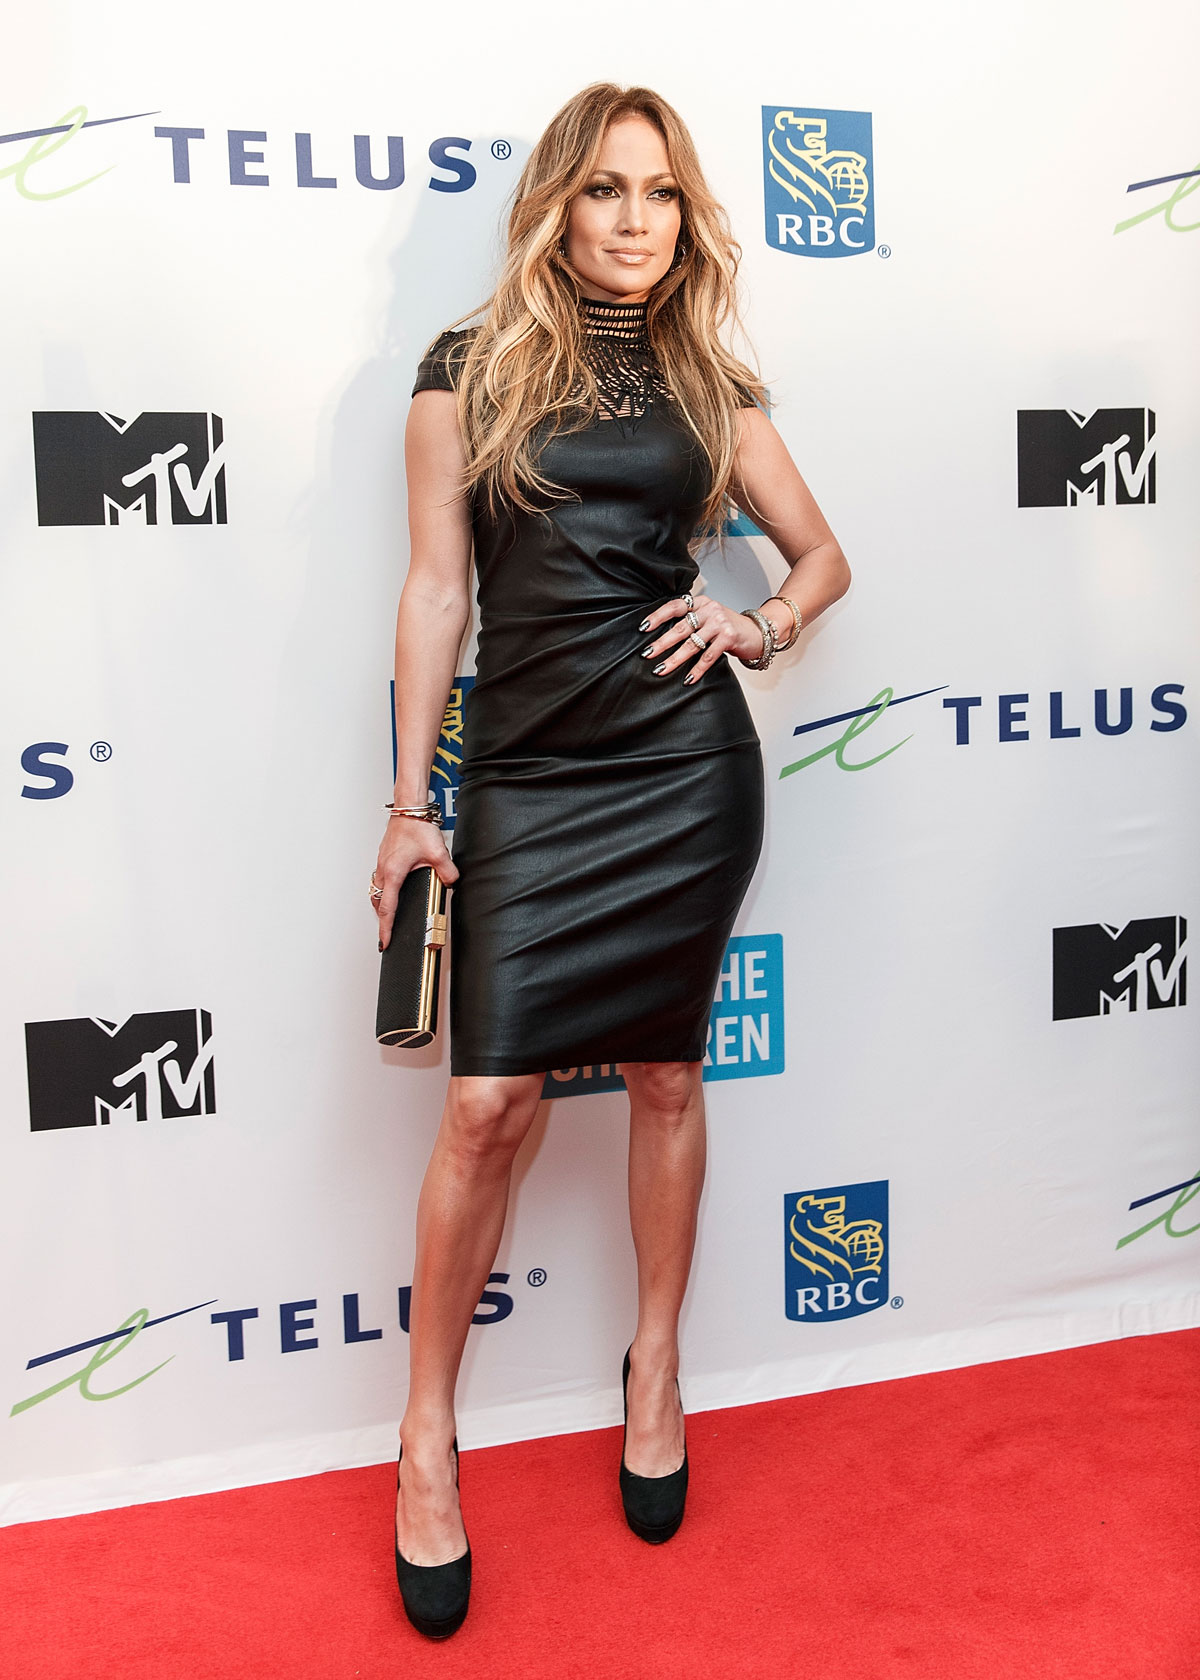 Jennifer Lopez attends We Day Event in Vancouver